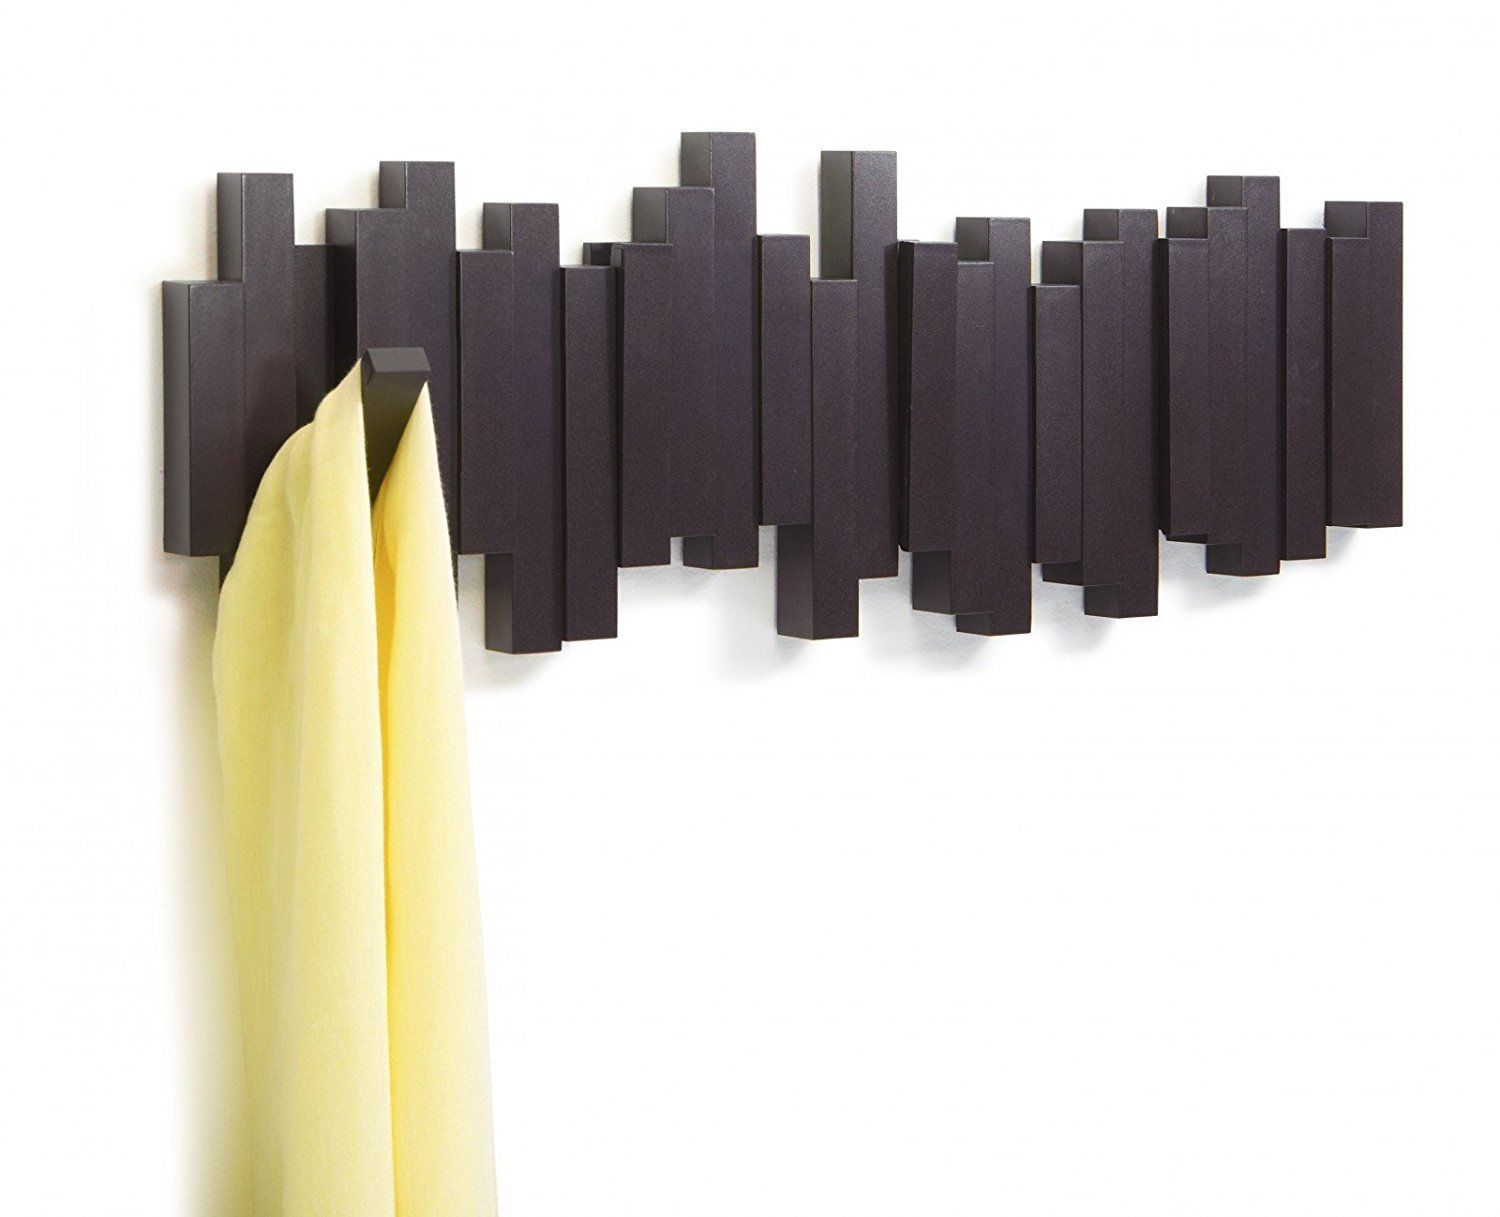 Porte manteau design mural Sticks-1